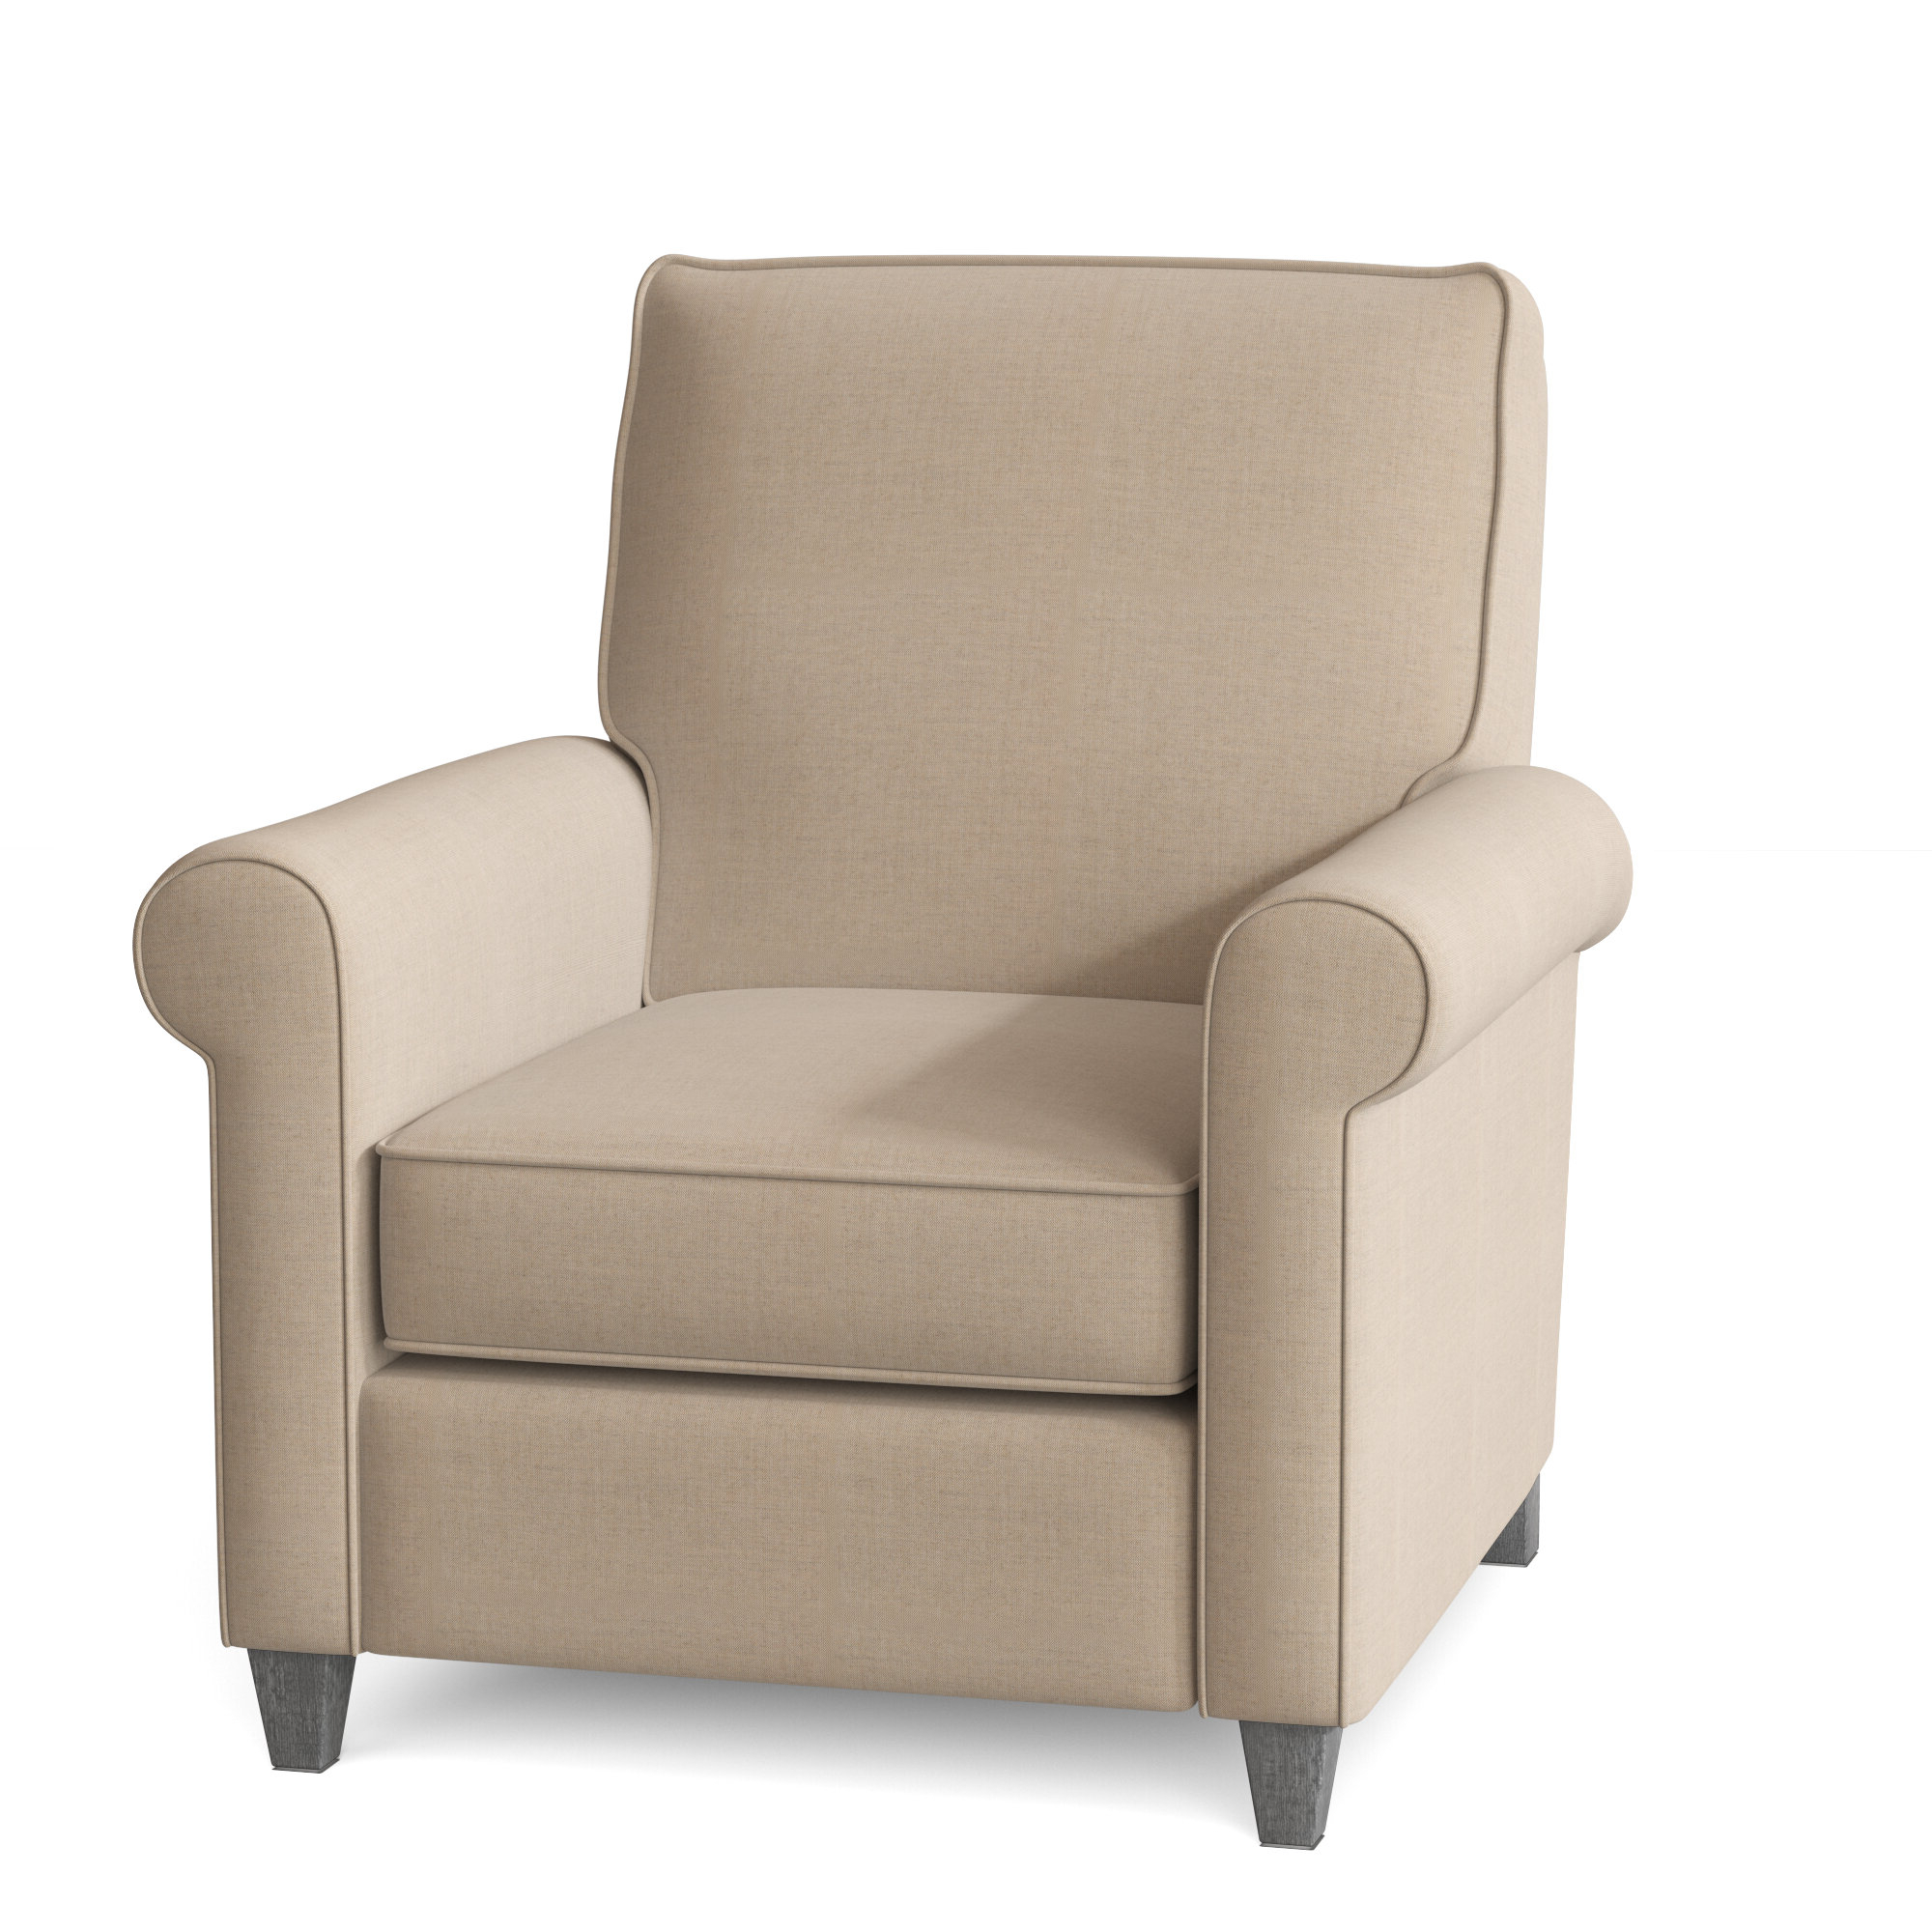 Preferred Acton Manual Recliner Inside Ronald Polyester Blend Armchairs (View 14 of 20)